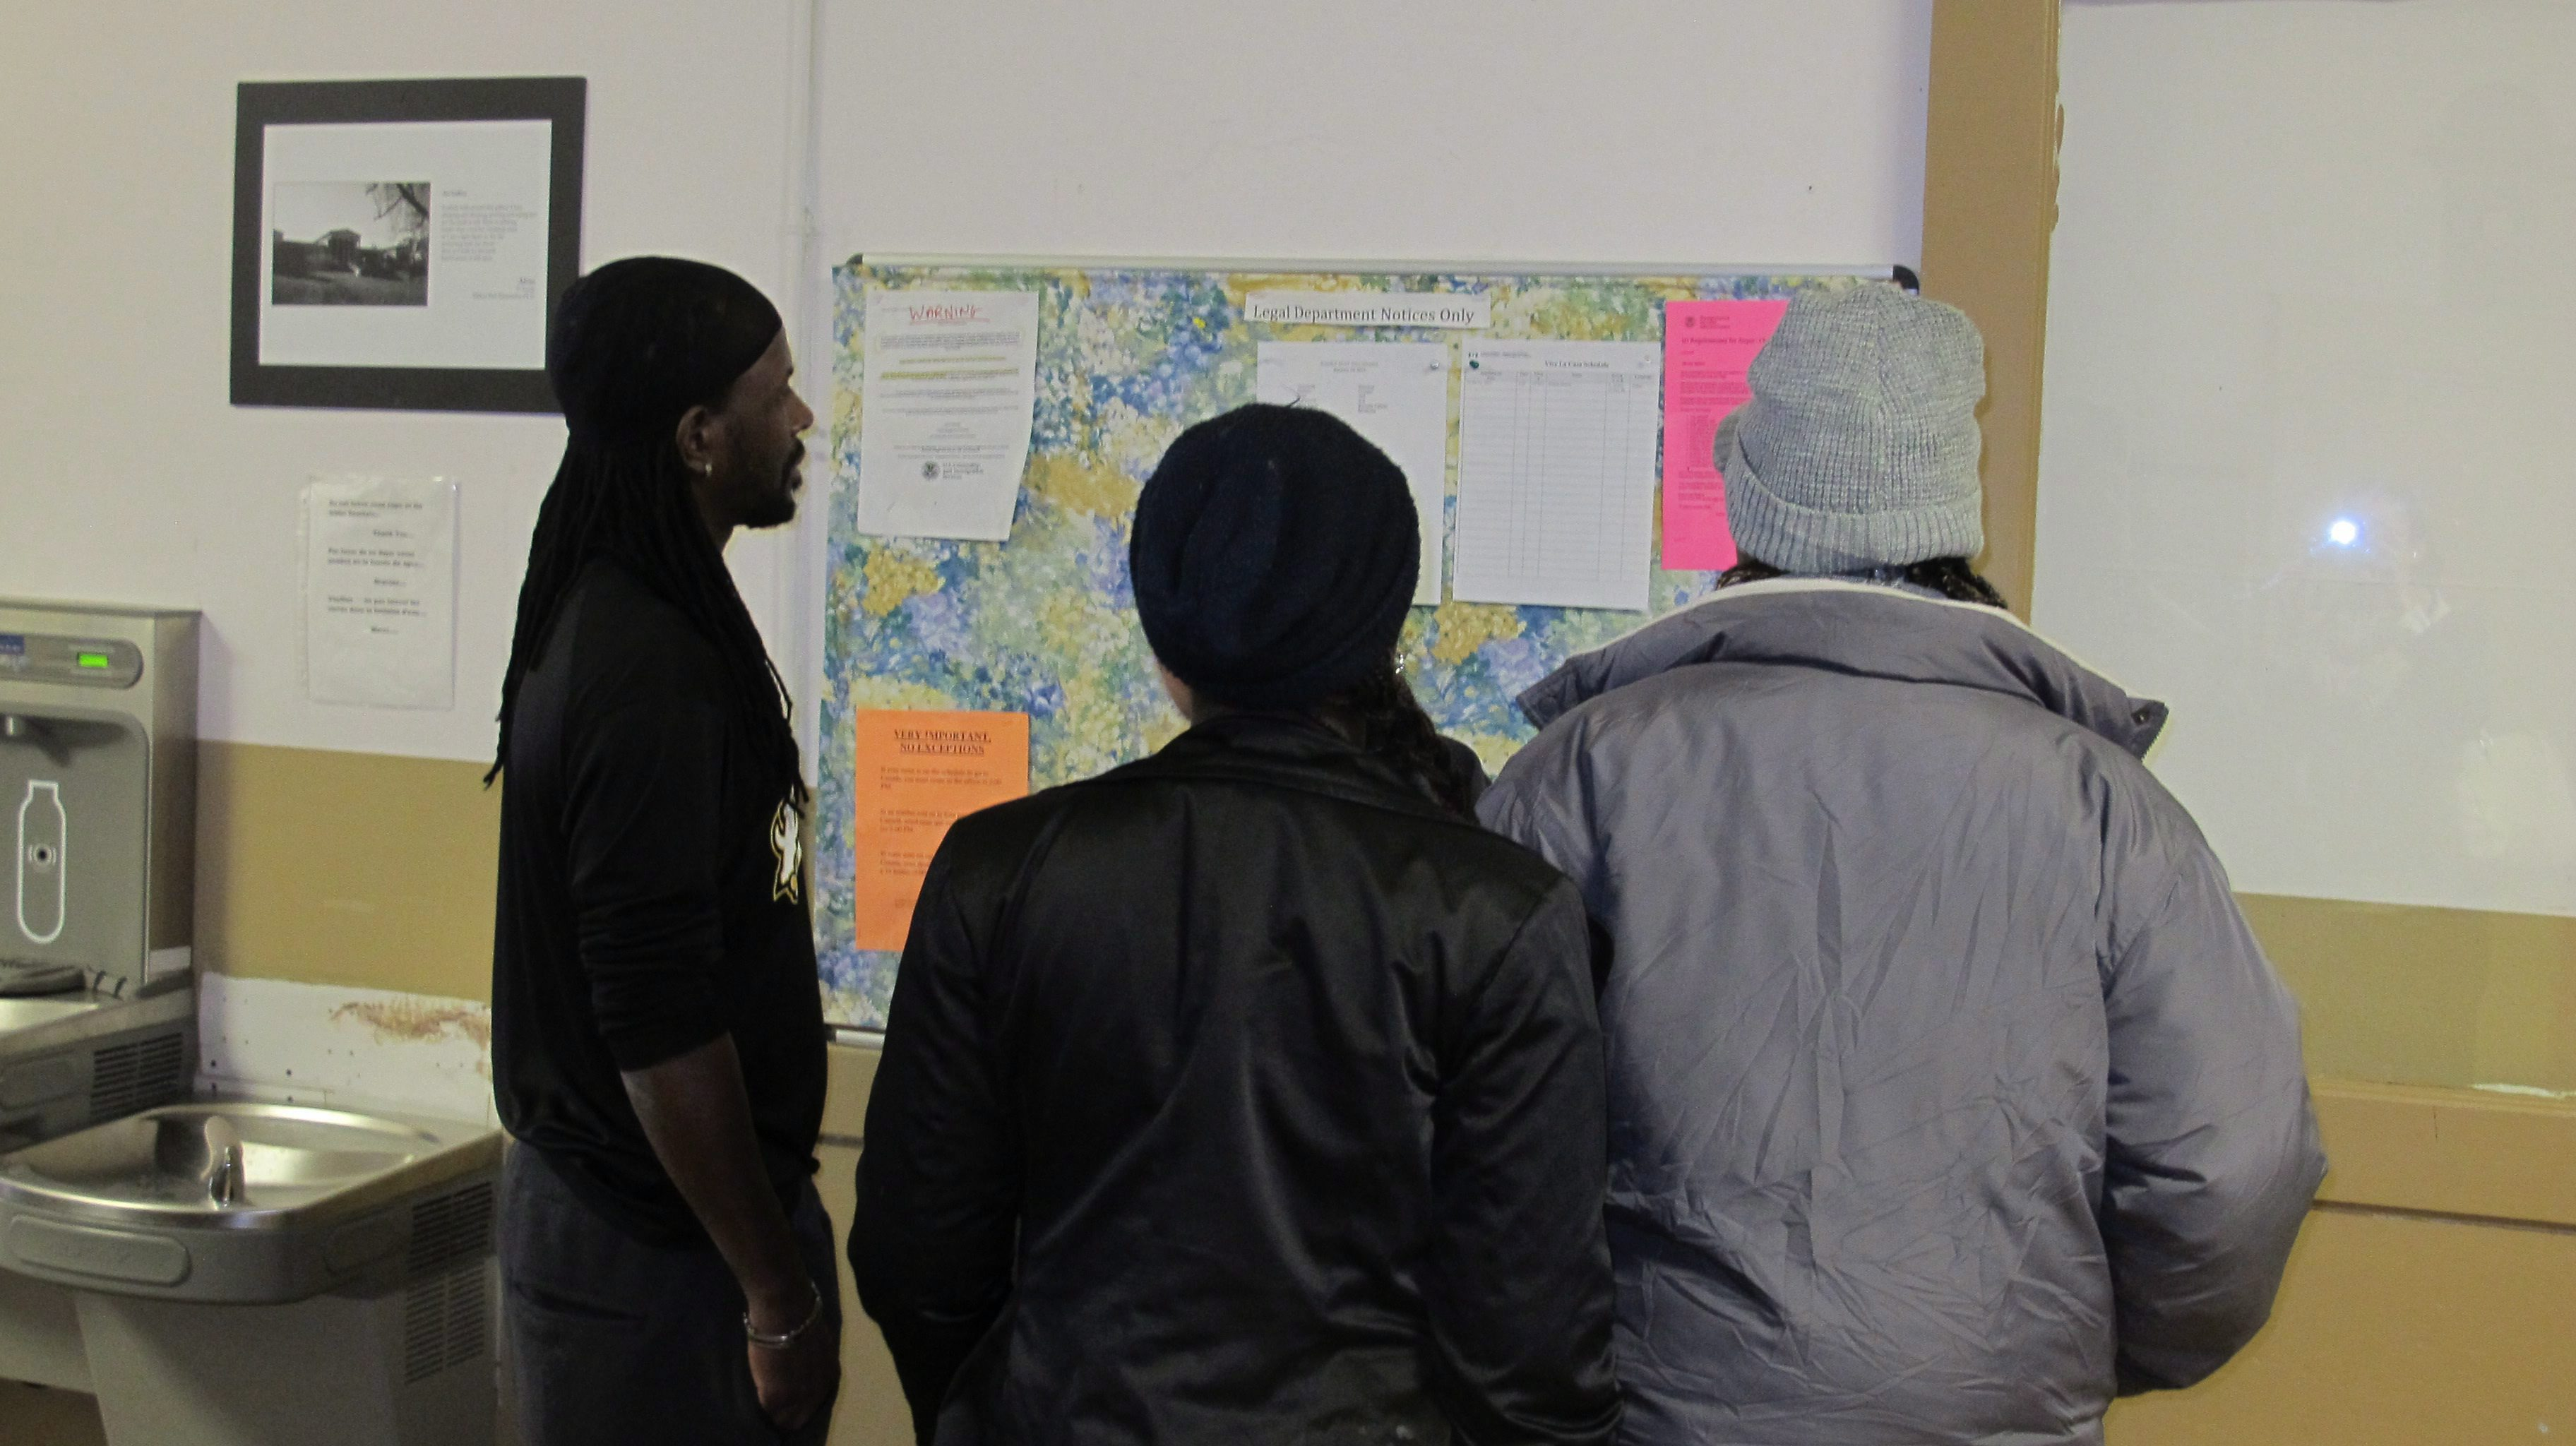 Asylum-seekers staying at the Vive La Casa shelter in Buffalo, N.Y., check to see whether they have been scheduled for an interview with Canadian immigration officials the following day. (AP Photo/Carolyn Thompson)